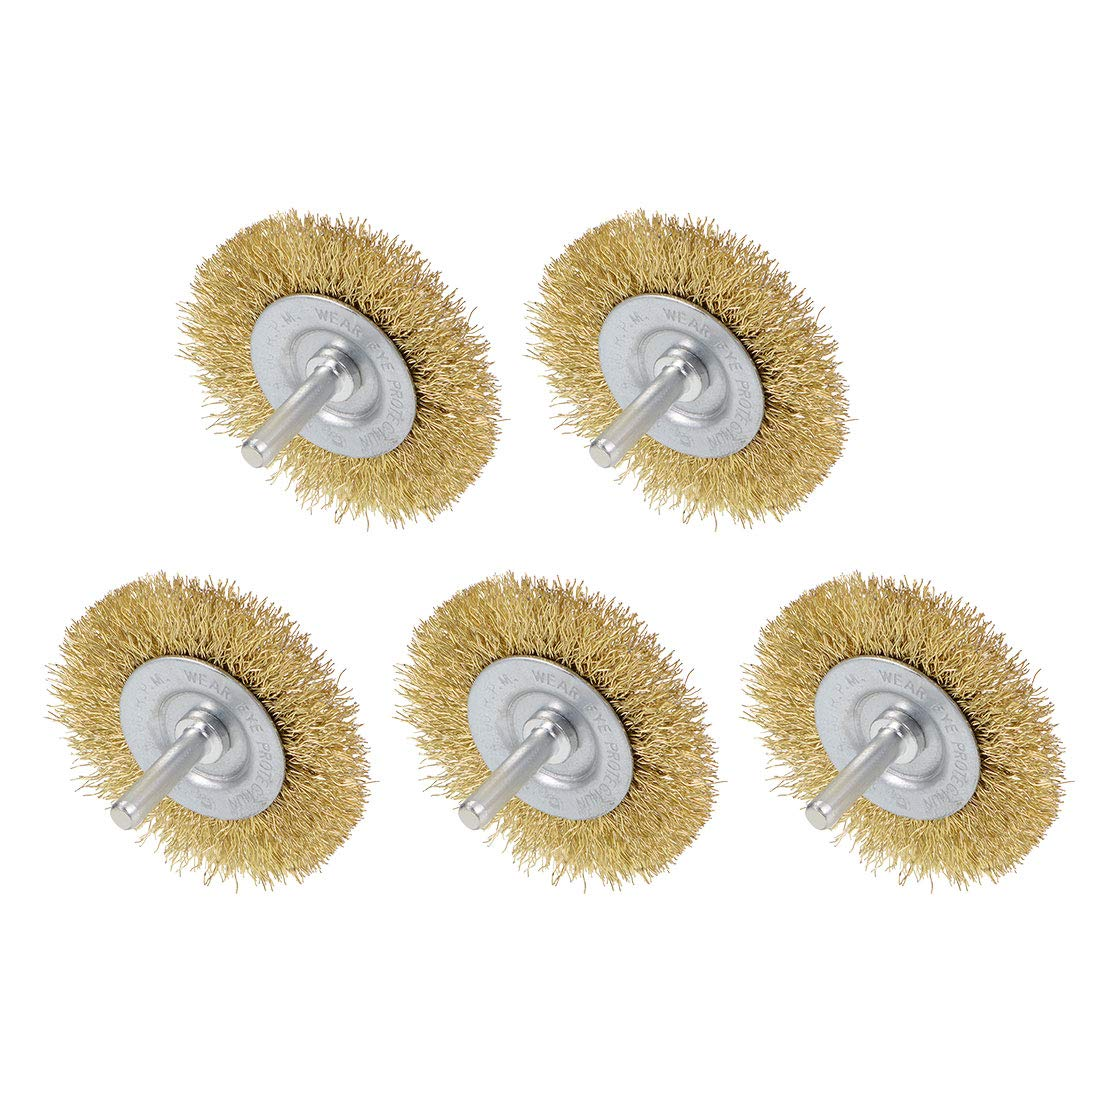 uxcell 2-1//2-Inch Wire Wheel Brush Bench Brass Plated Crimped Steel 1//4-Inch Shank 5 Pcs